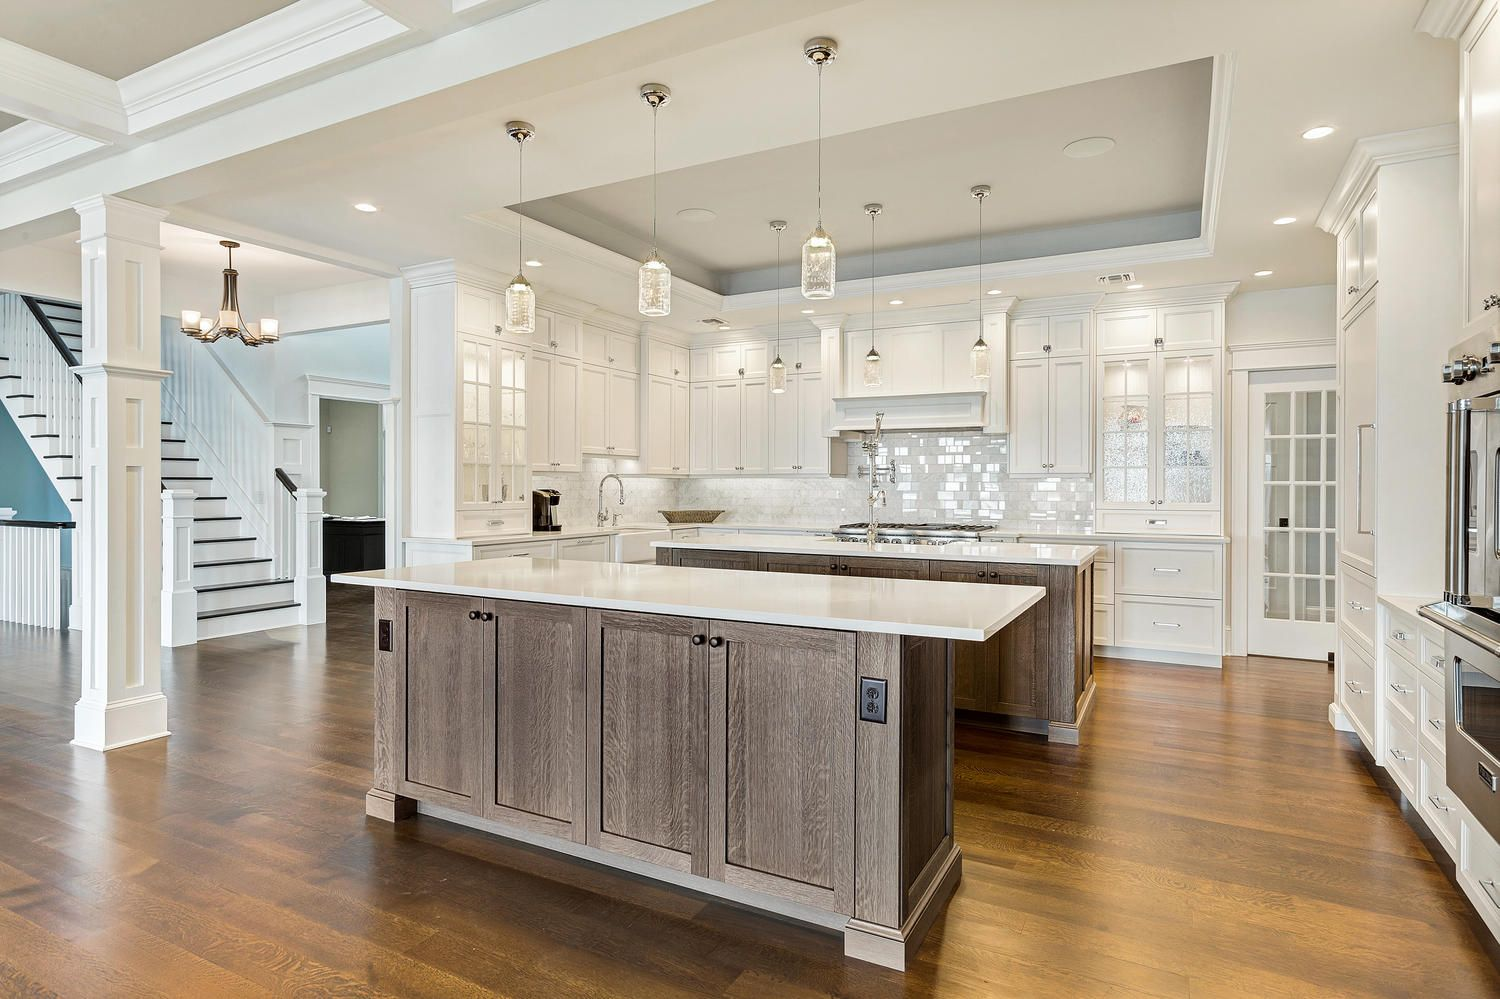 Coastal Dream Kitchen Brick New Jerseydesign Line Kitchens Cool Design Line Kitchens 2018